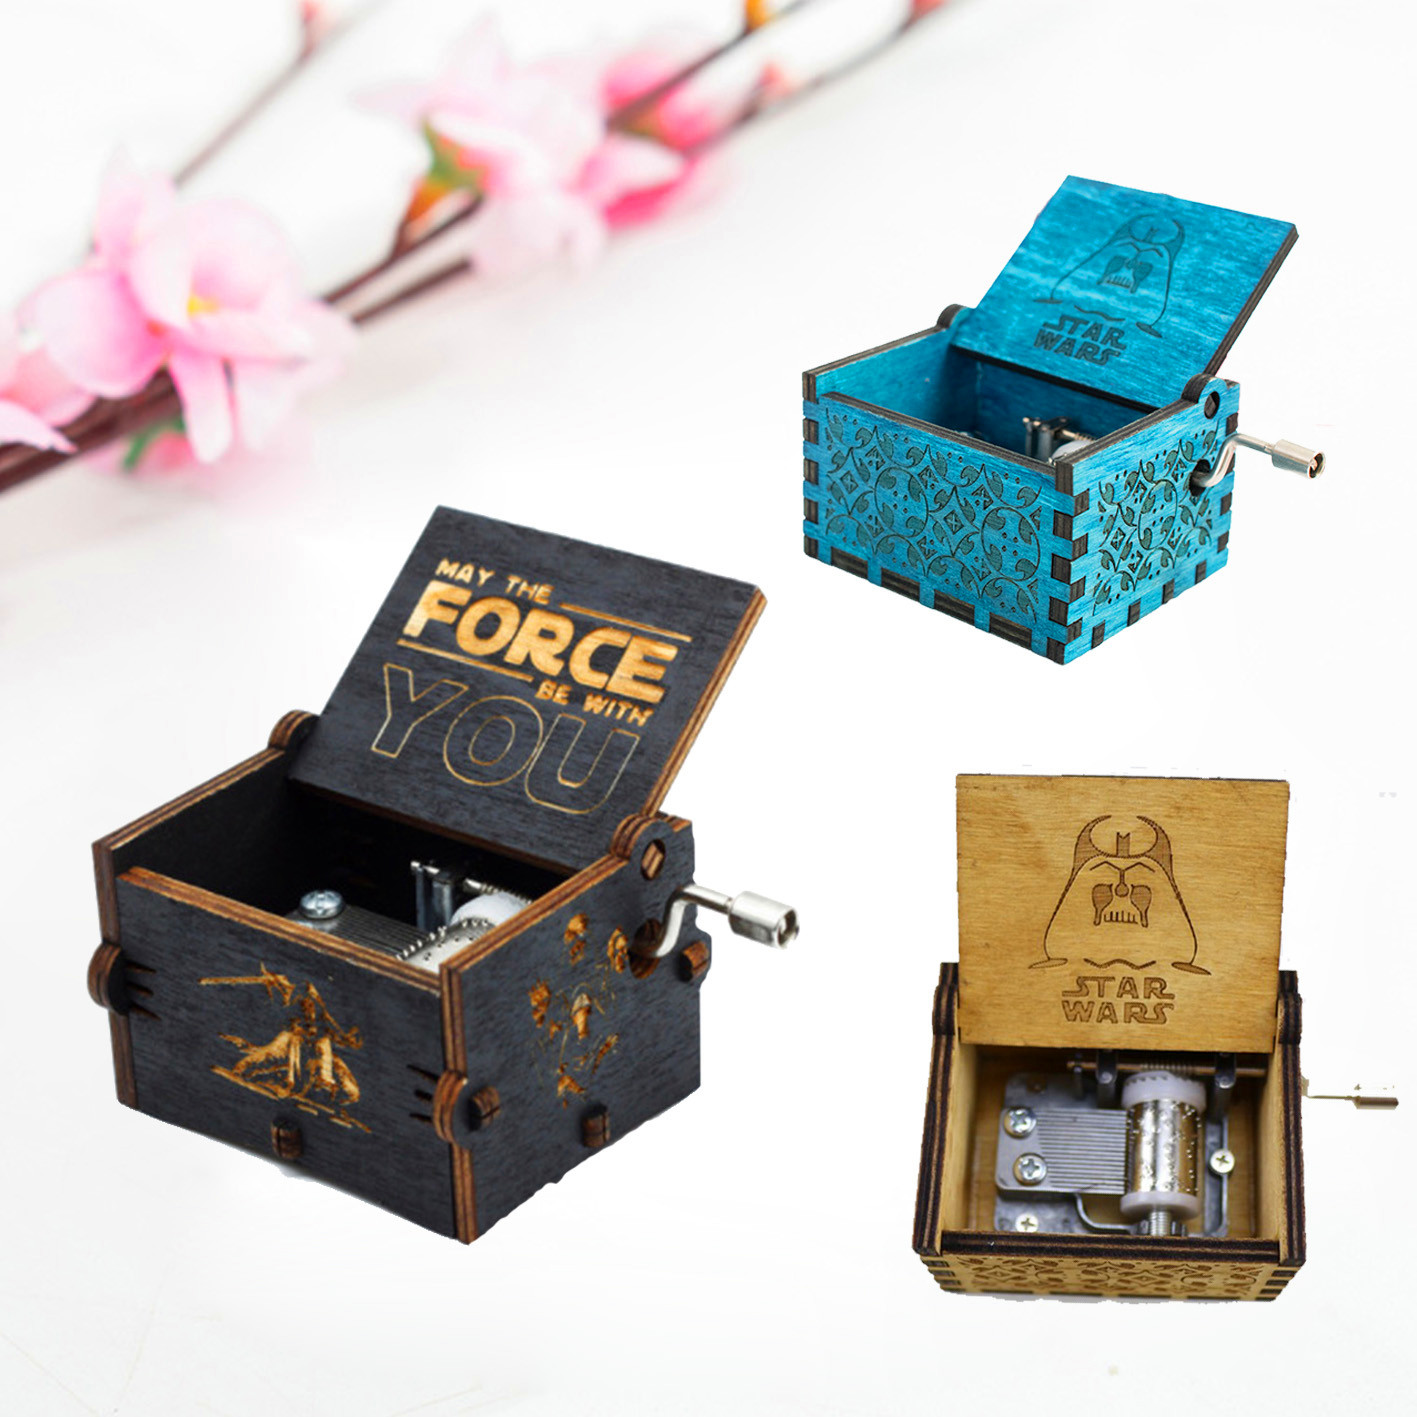 NEW Star War Musical Action Figure Toy Antique Carved Wooden Hand Crank Music Box Creative Birthday Christmas Gift Toys antique